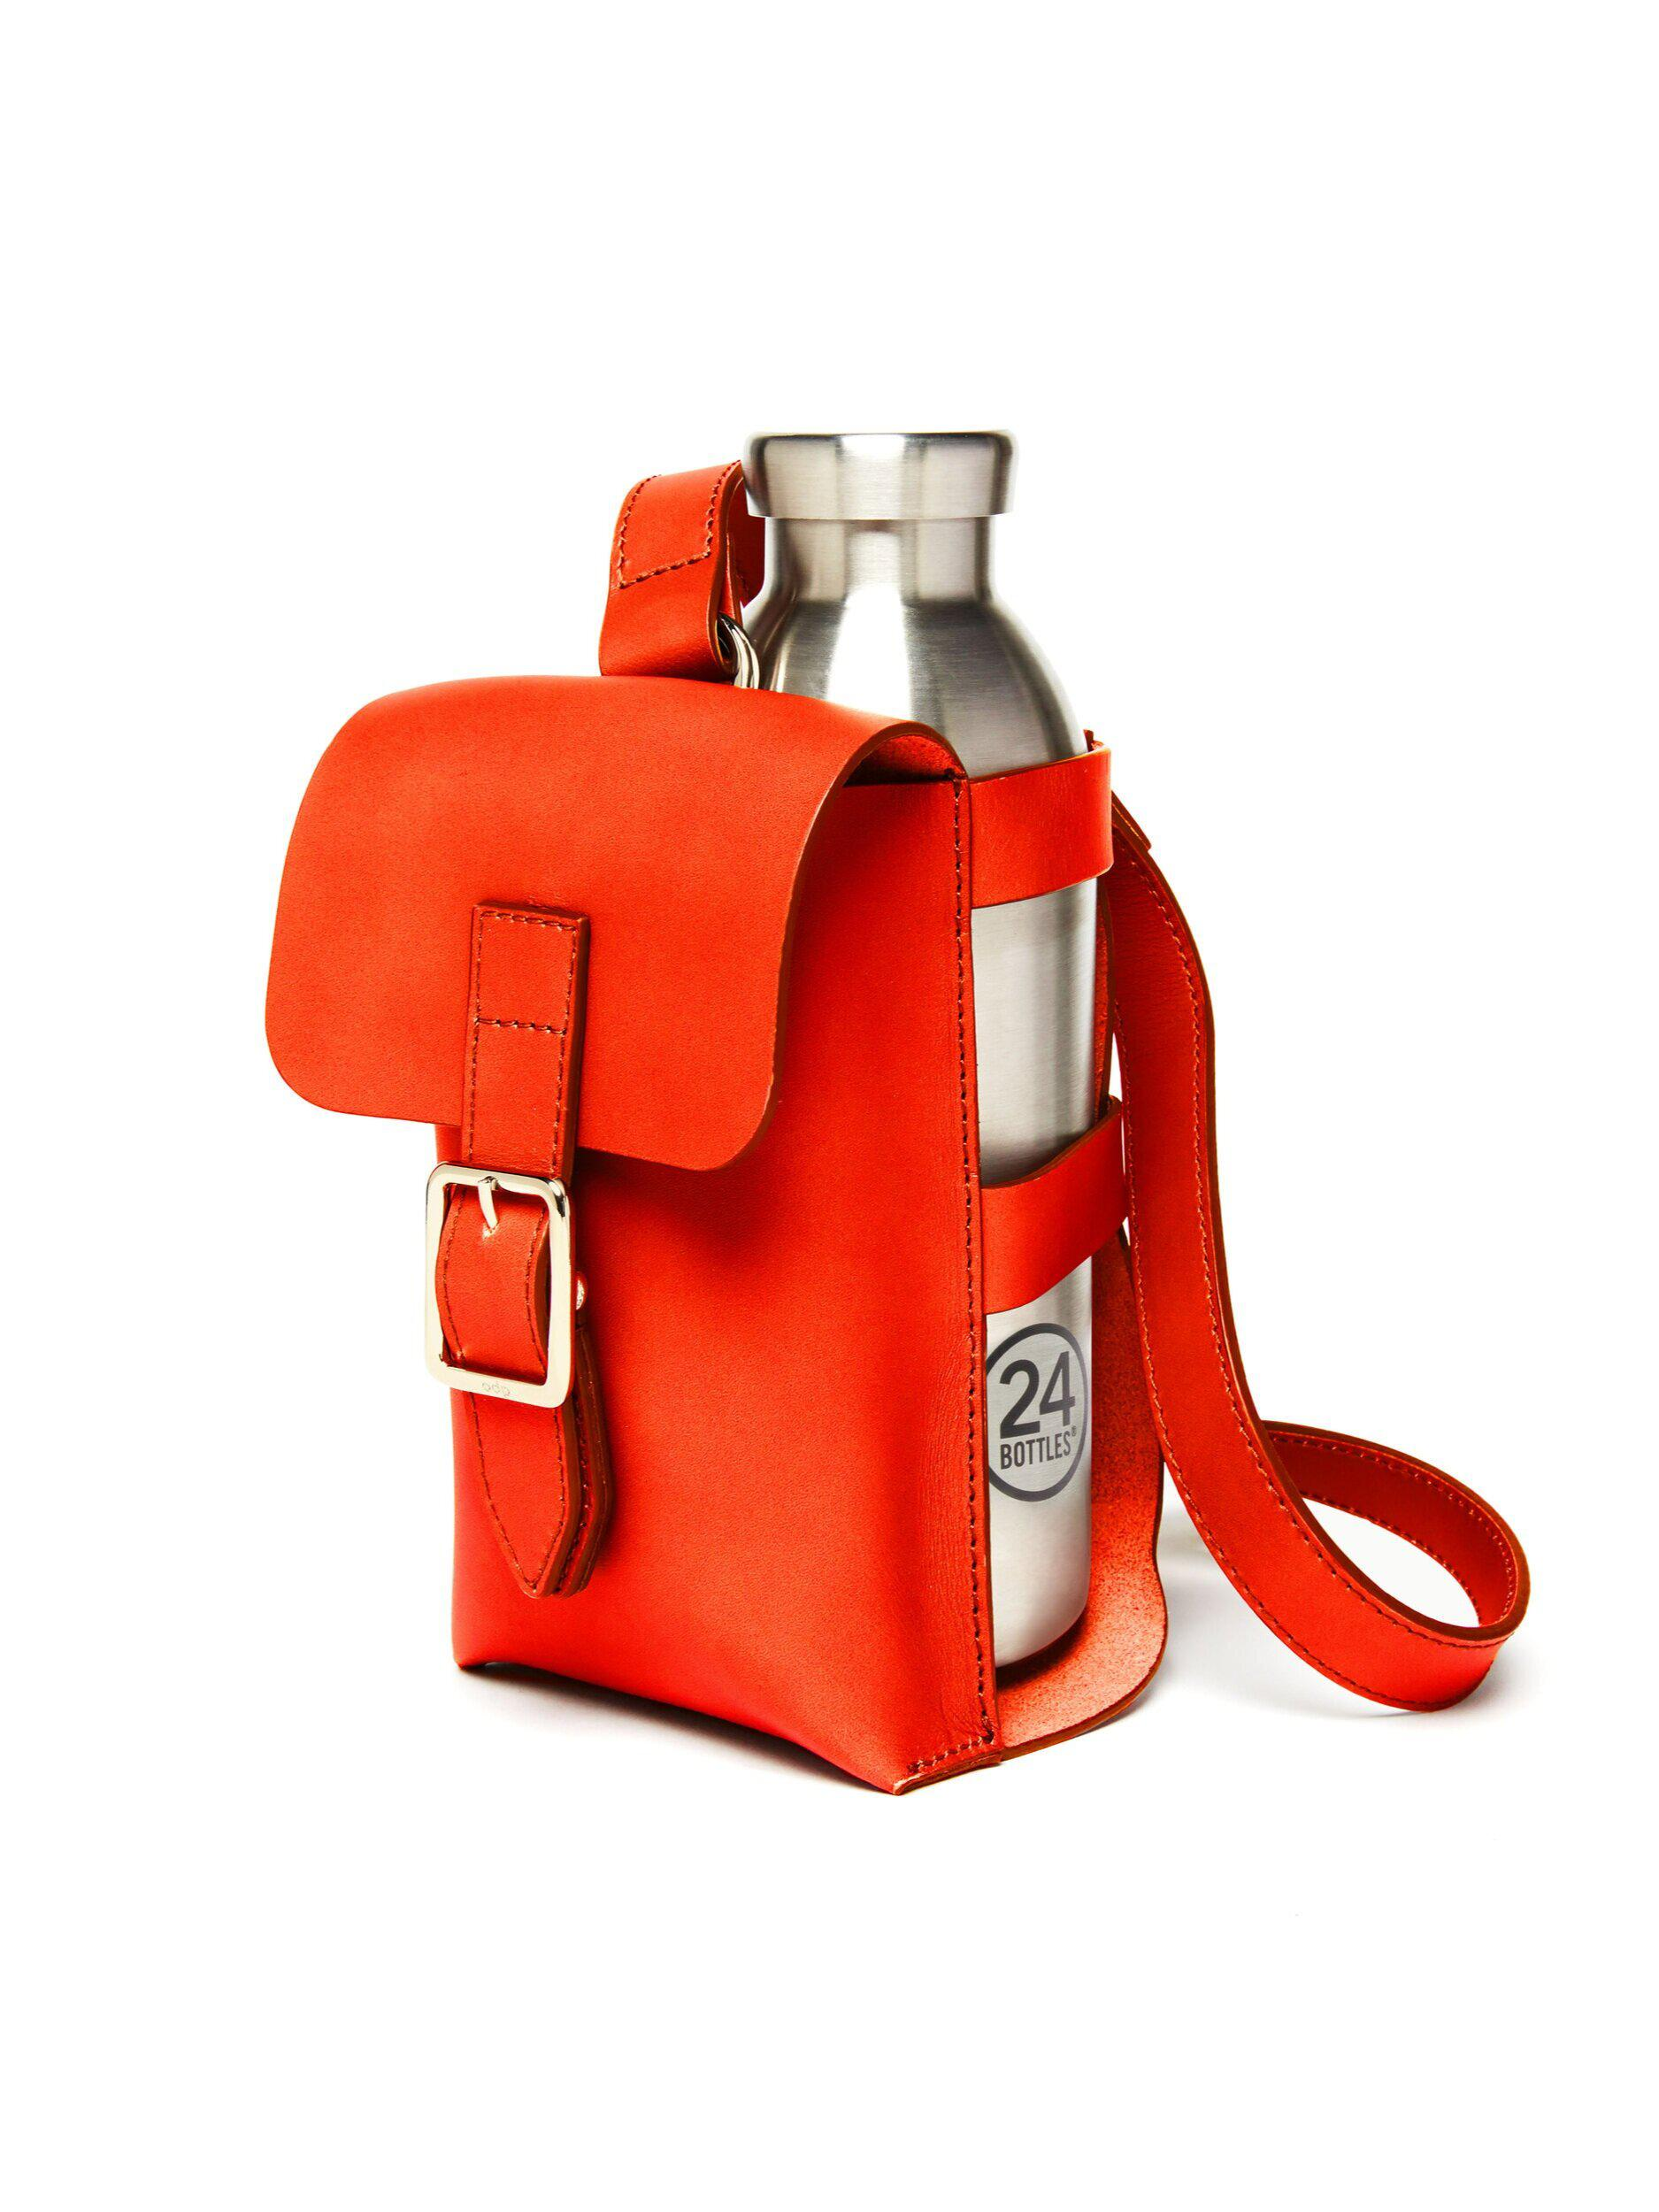 Bottle Bag with Bottle - Fiamma Leather